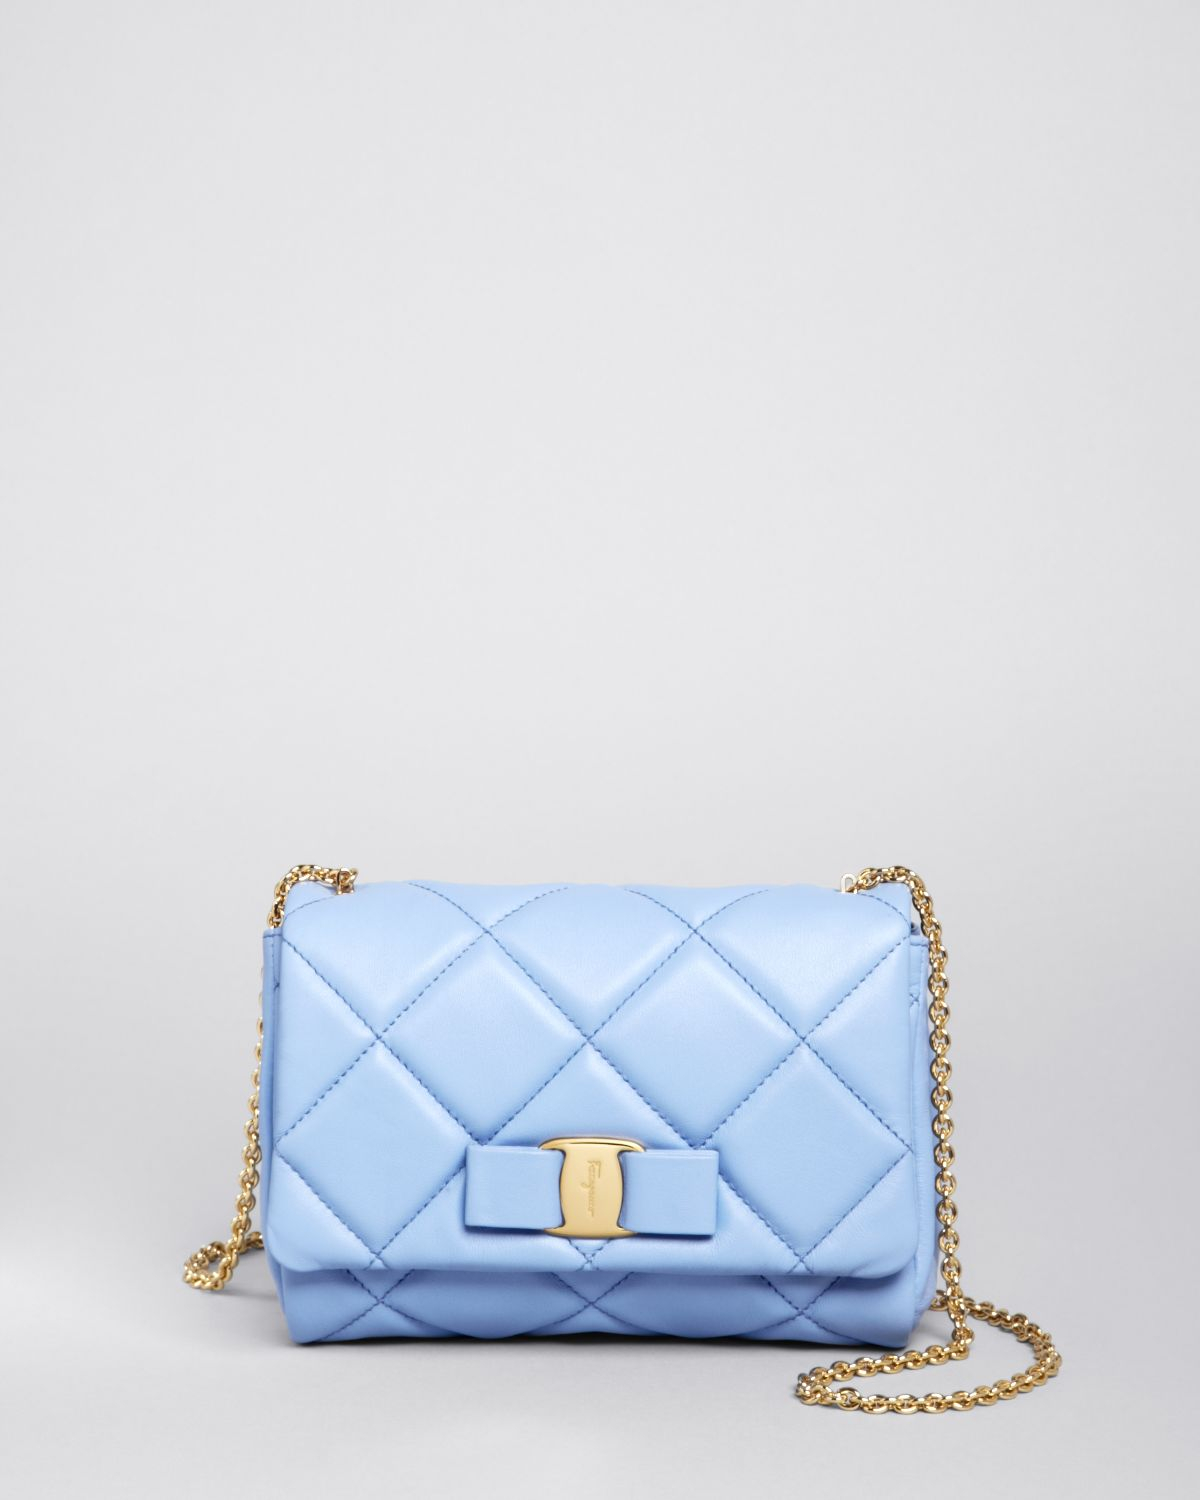 Lyst - Ferragamo Mini Bag - Soft Quilted Miss Vara Bow in Blue ffbf7b7932402